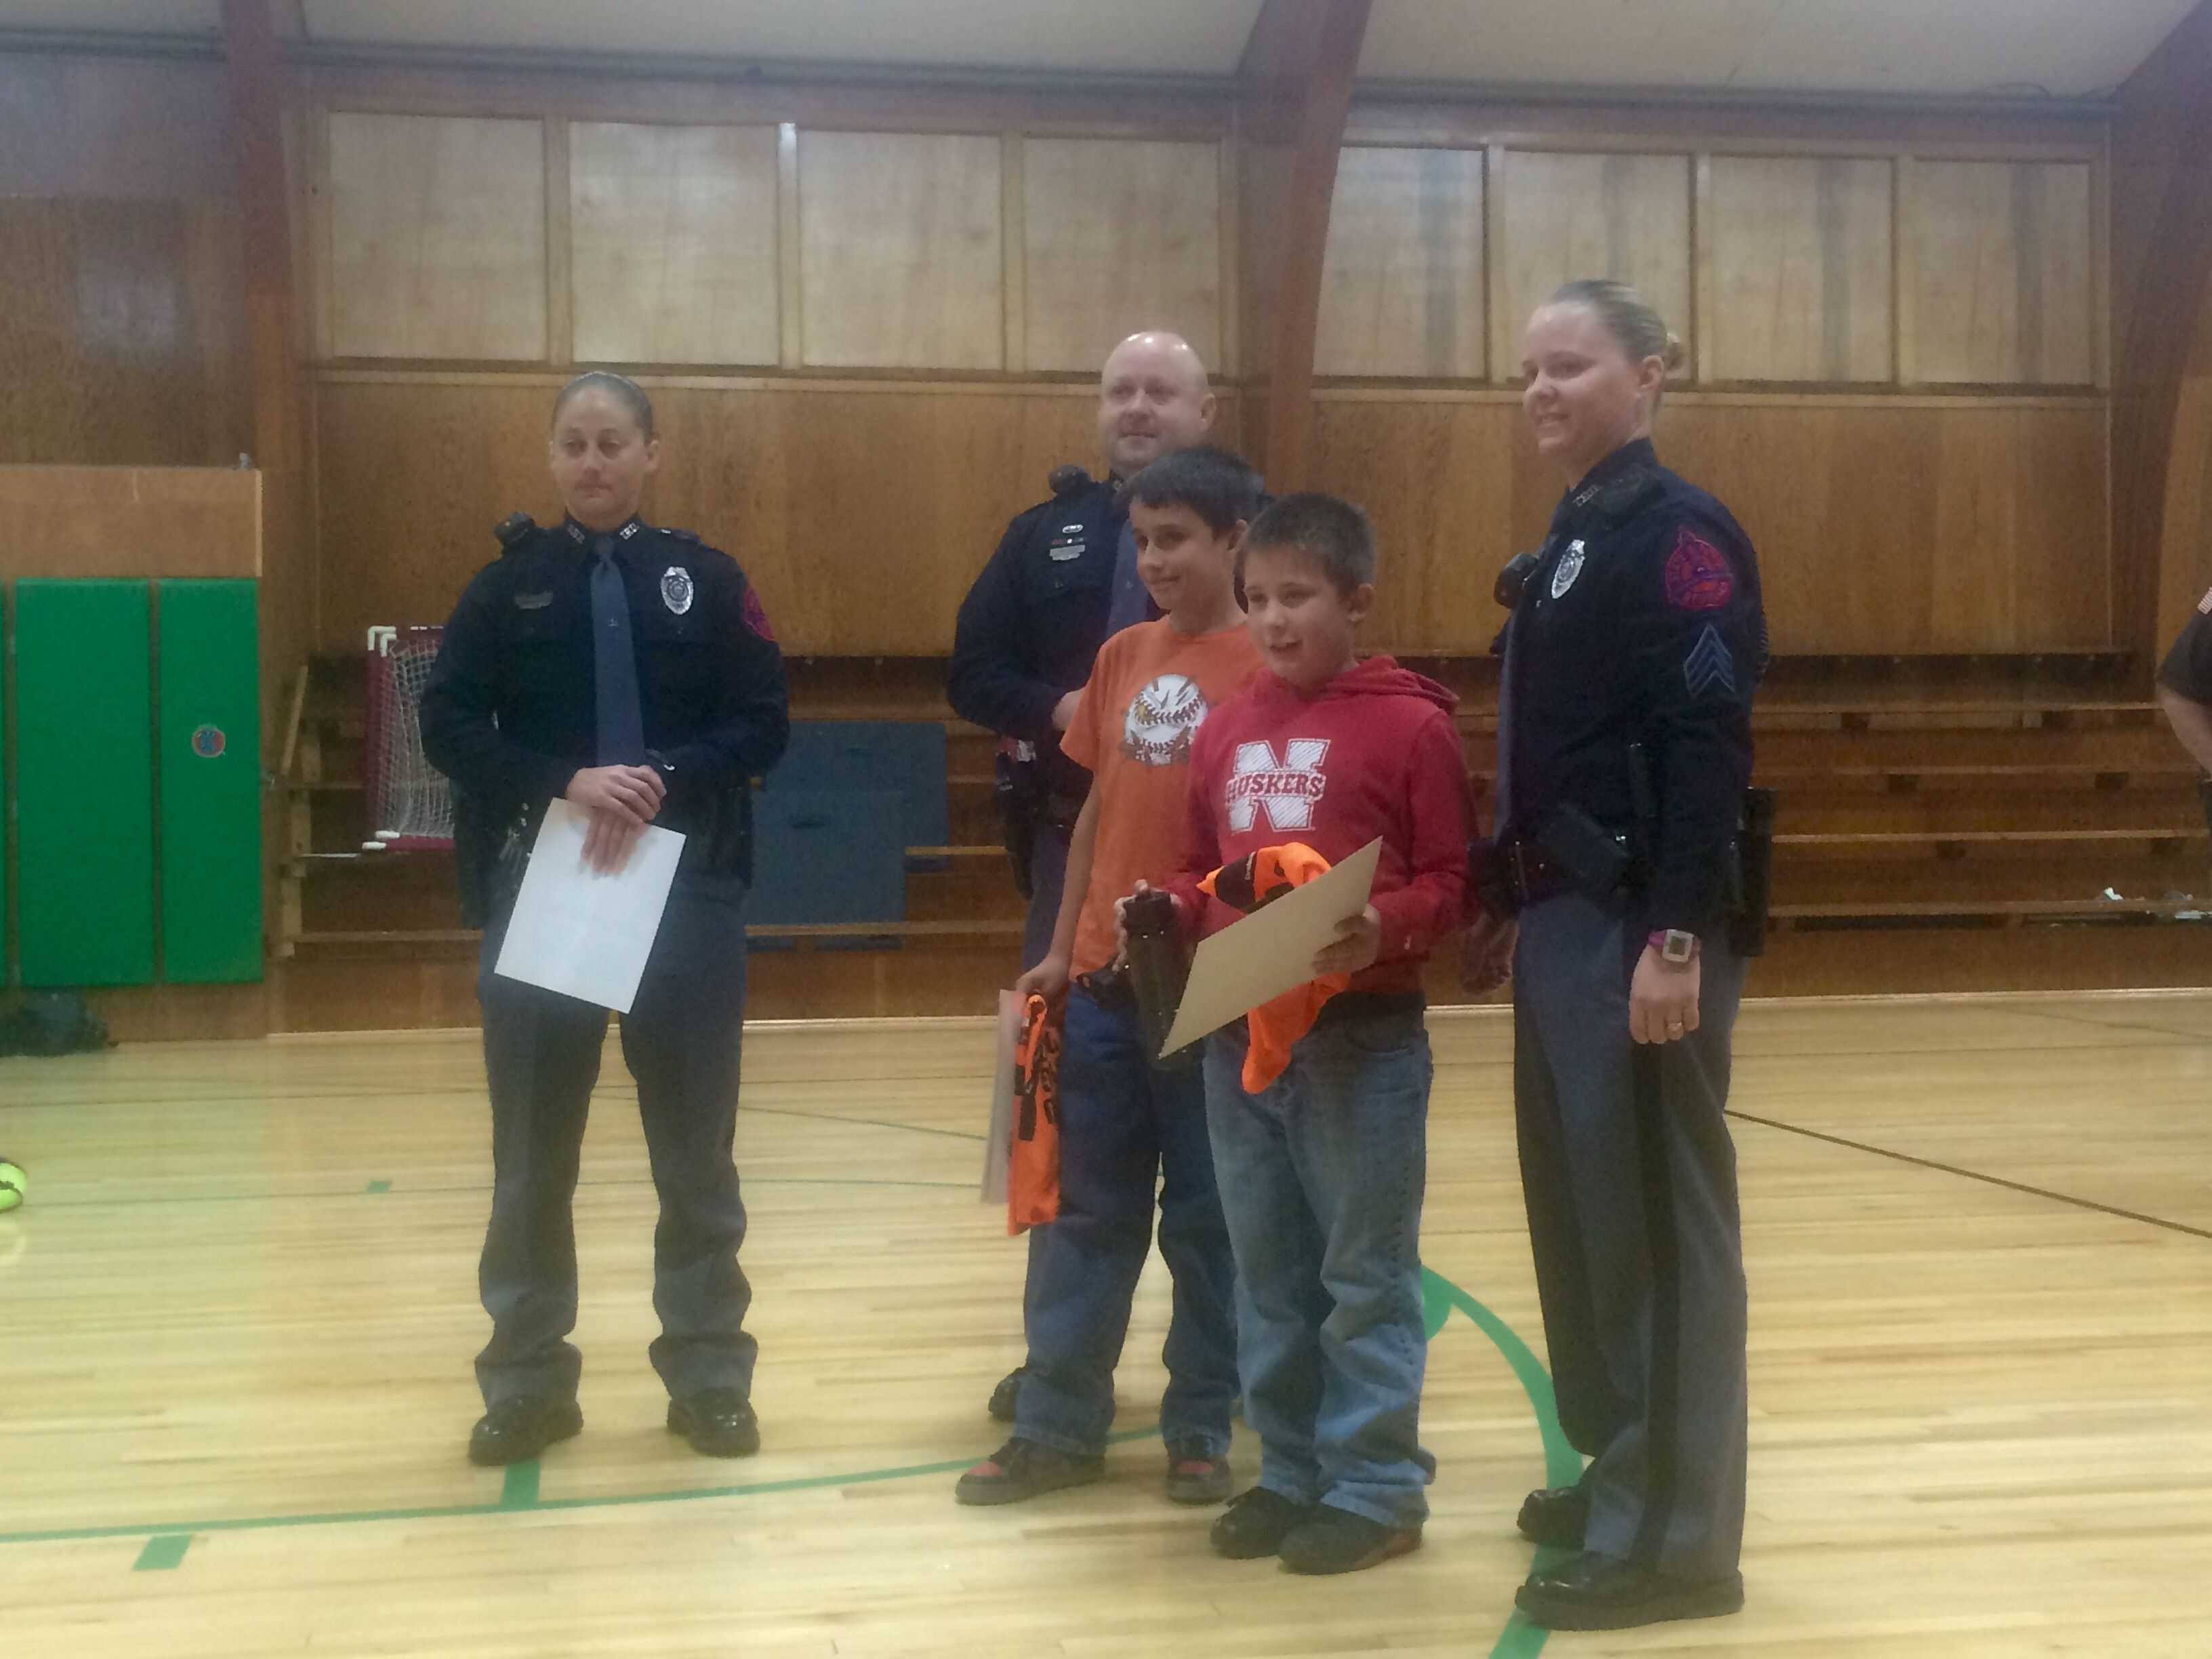 state patrol awards two loomis brothers seat belt survivor rrn cael and kash nebraska state patrol